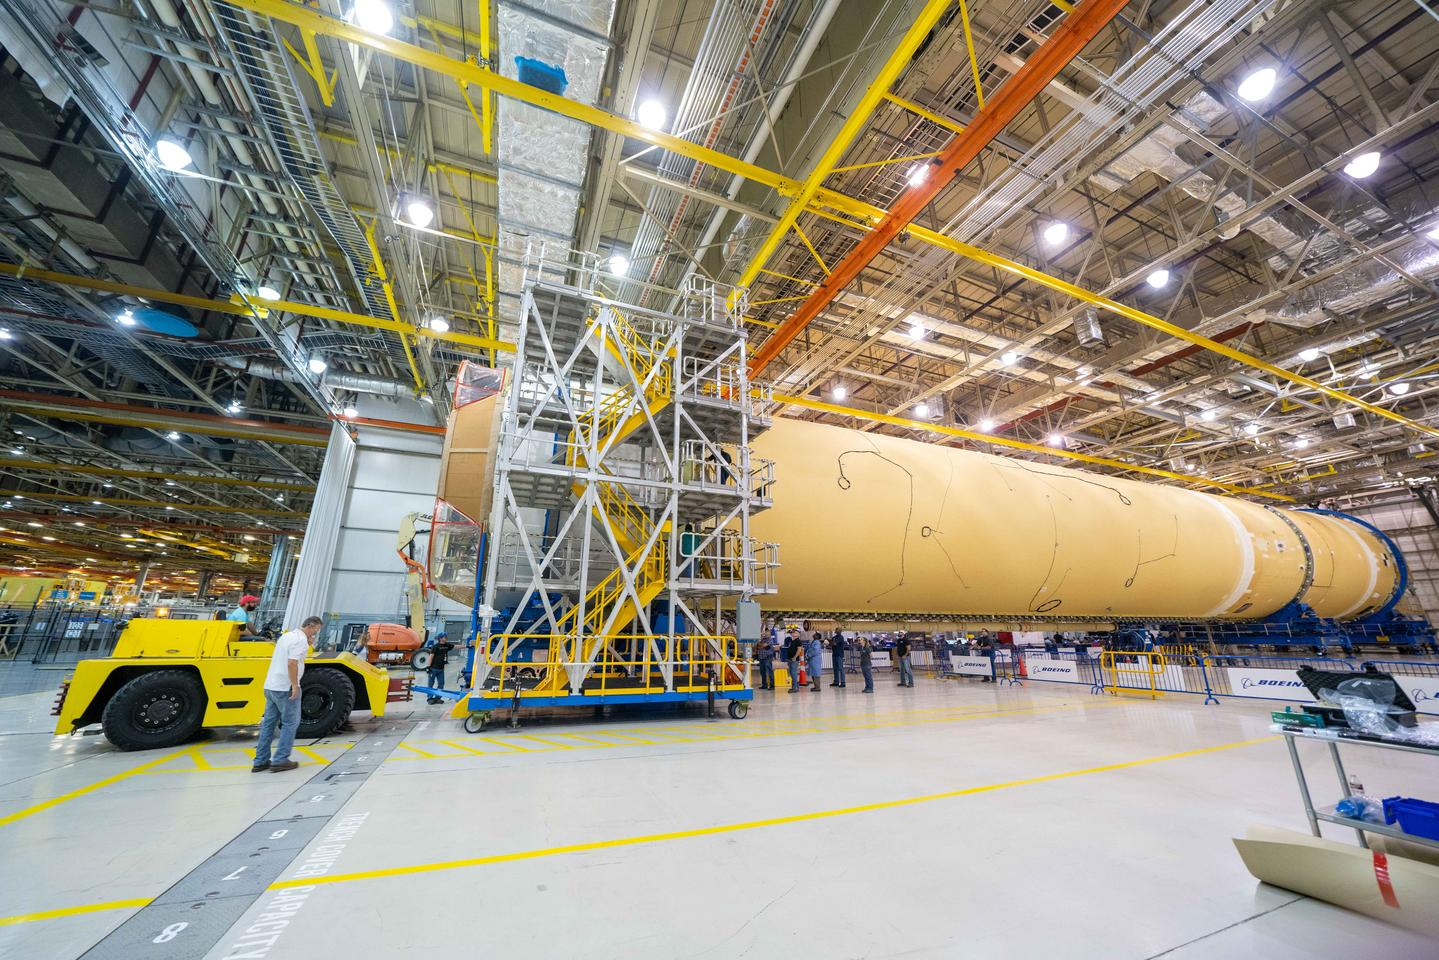 Boeing is building the massive 212-ft Space Launch System (SLS) core stage for NASA's Artemis I mission